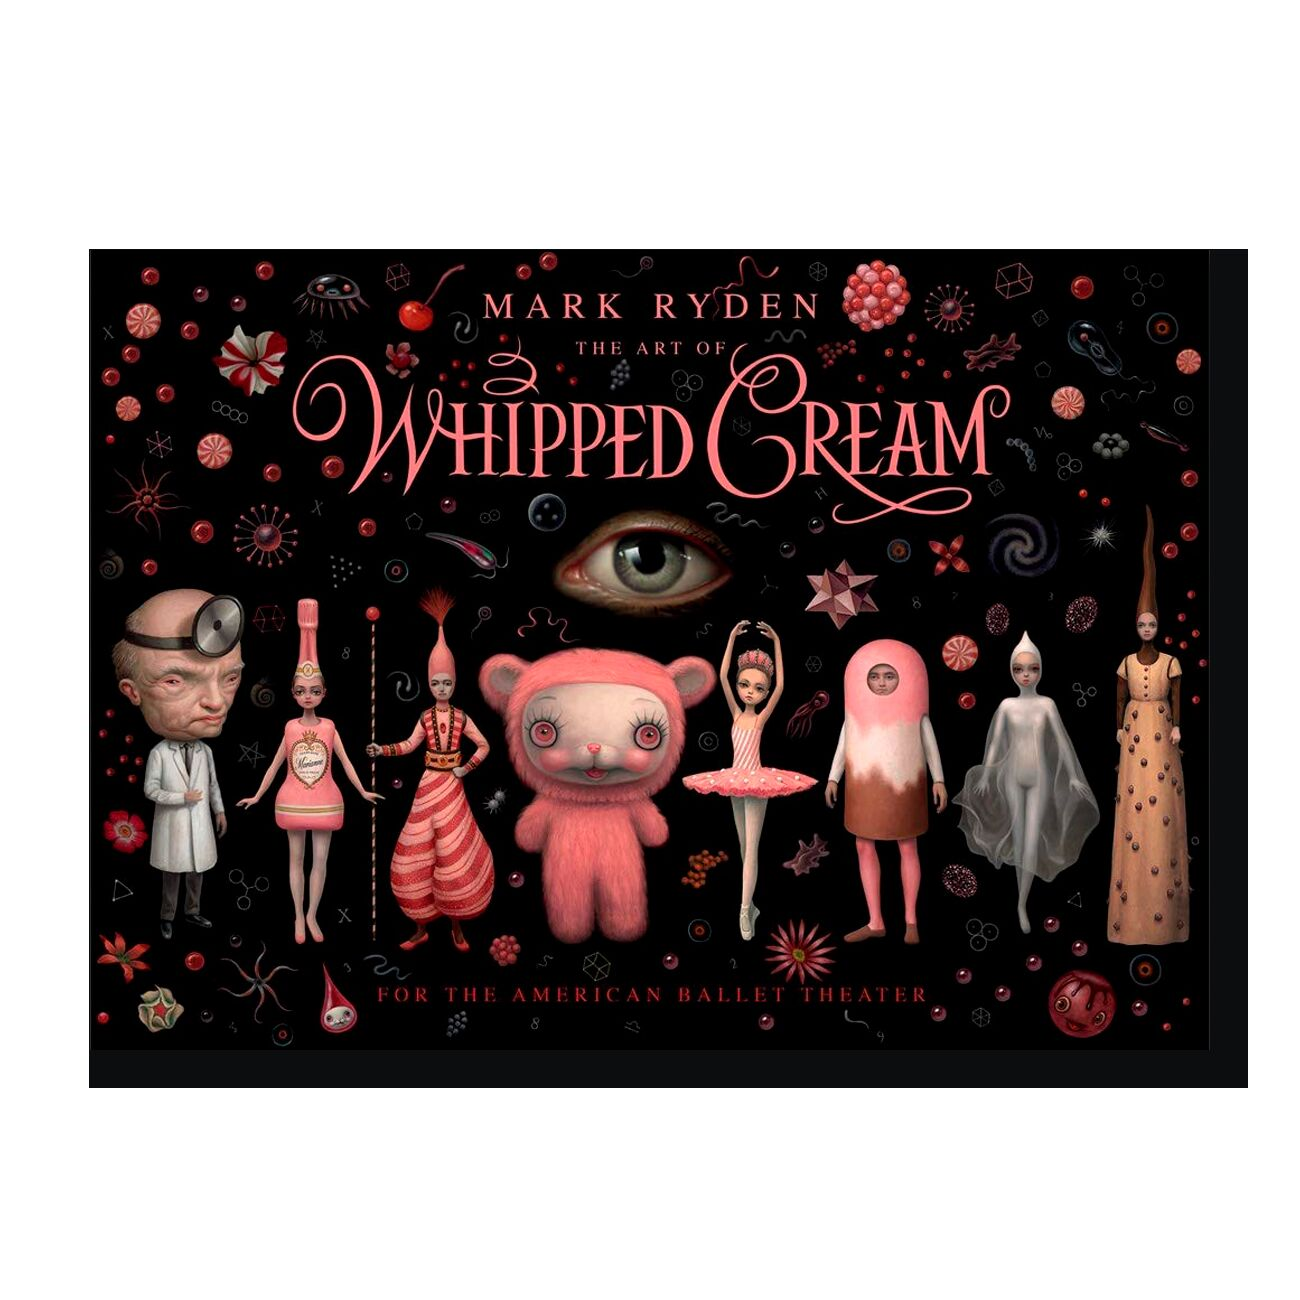 The Art of Mark Ryden s Whipped Cream: For the American Ballet Theatre